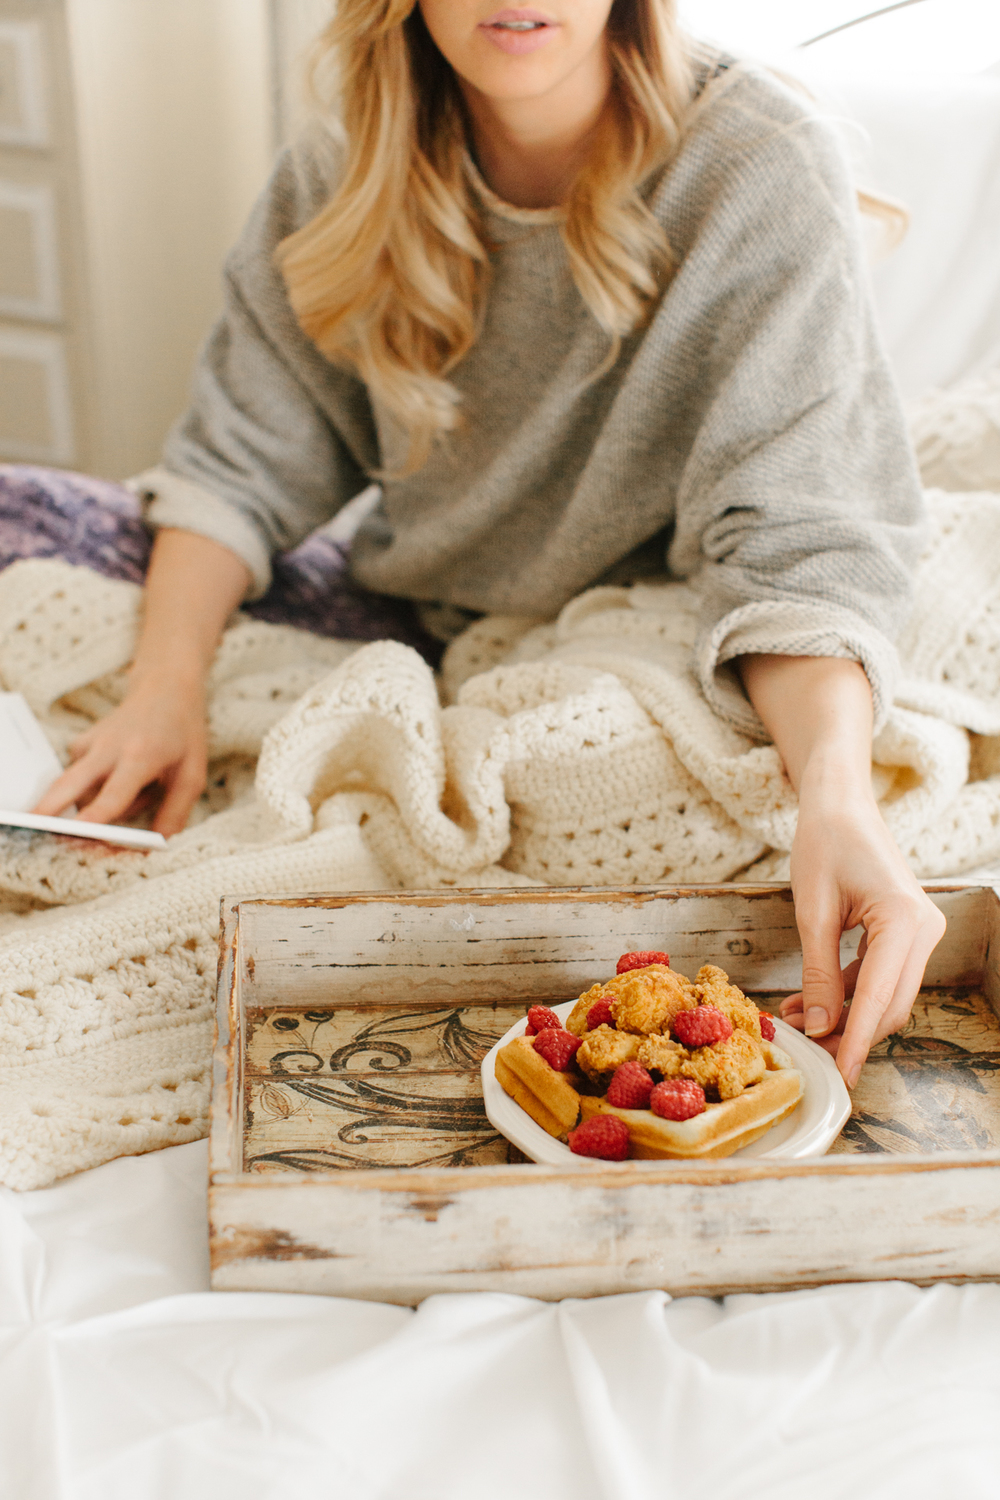 We don't suggest eating waffles in bed, but if you must...